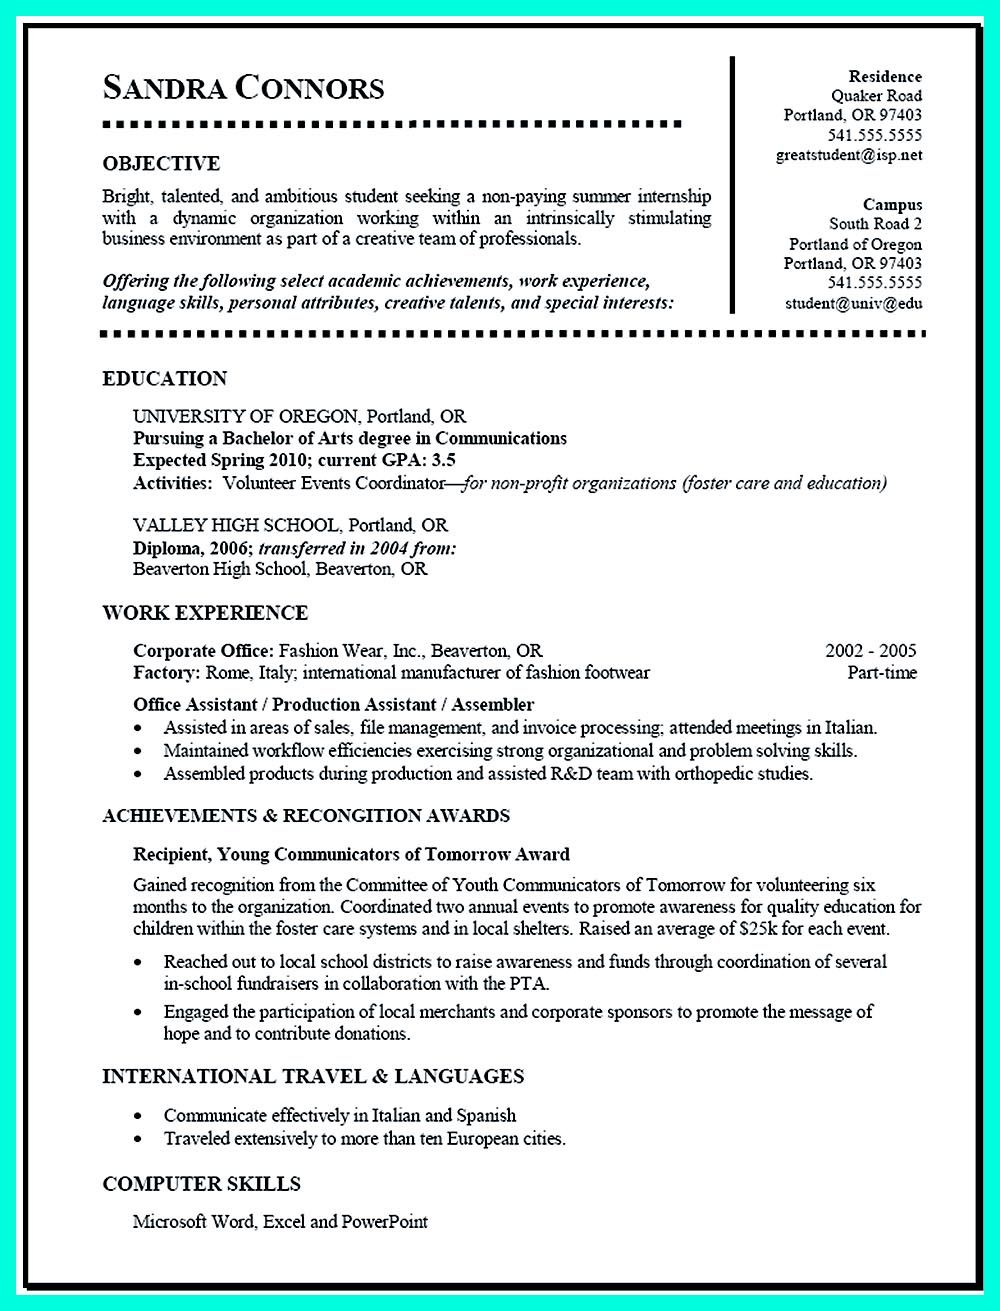 100 recent college graduate resume no experience best - Recent College Graduate Resume